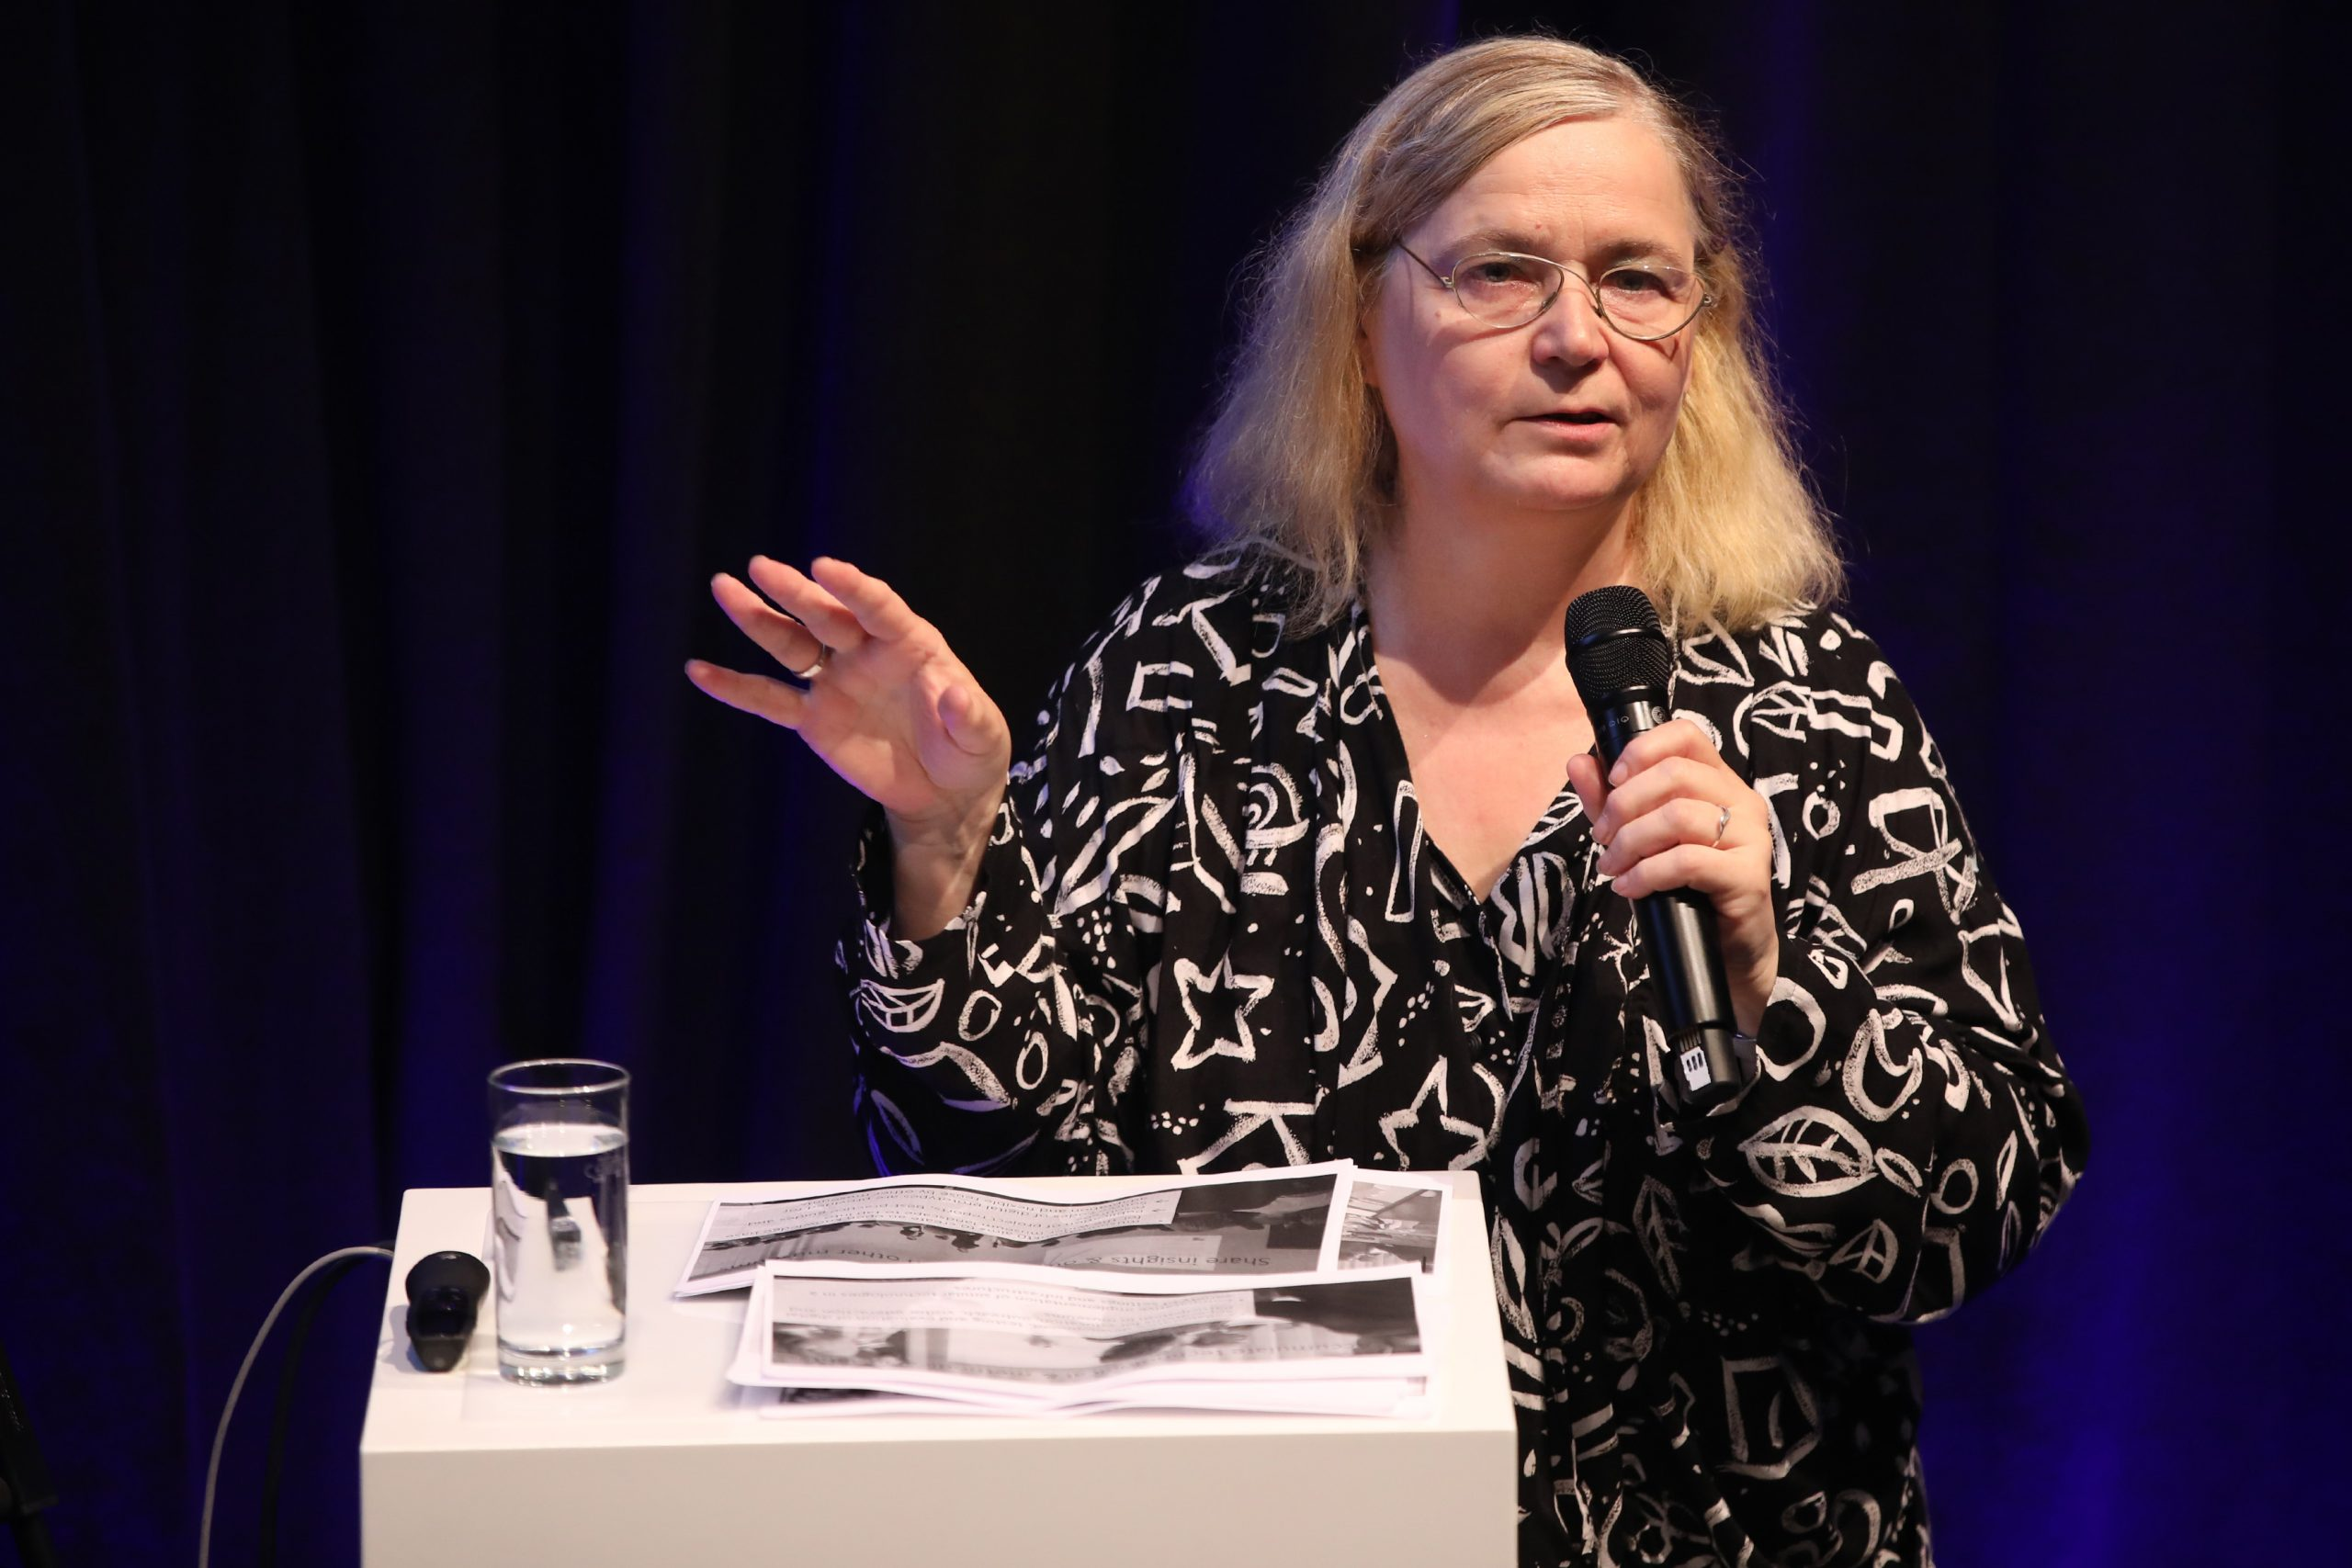 Immersive Showroom, How can digital tools be used to improve the visitor experience in museums? Prof. Monika Hagedorn-Saupe, Director museum4punkt0